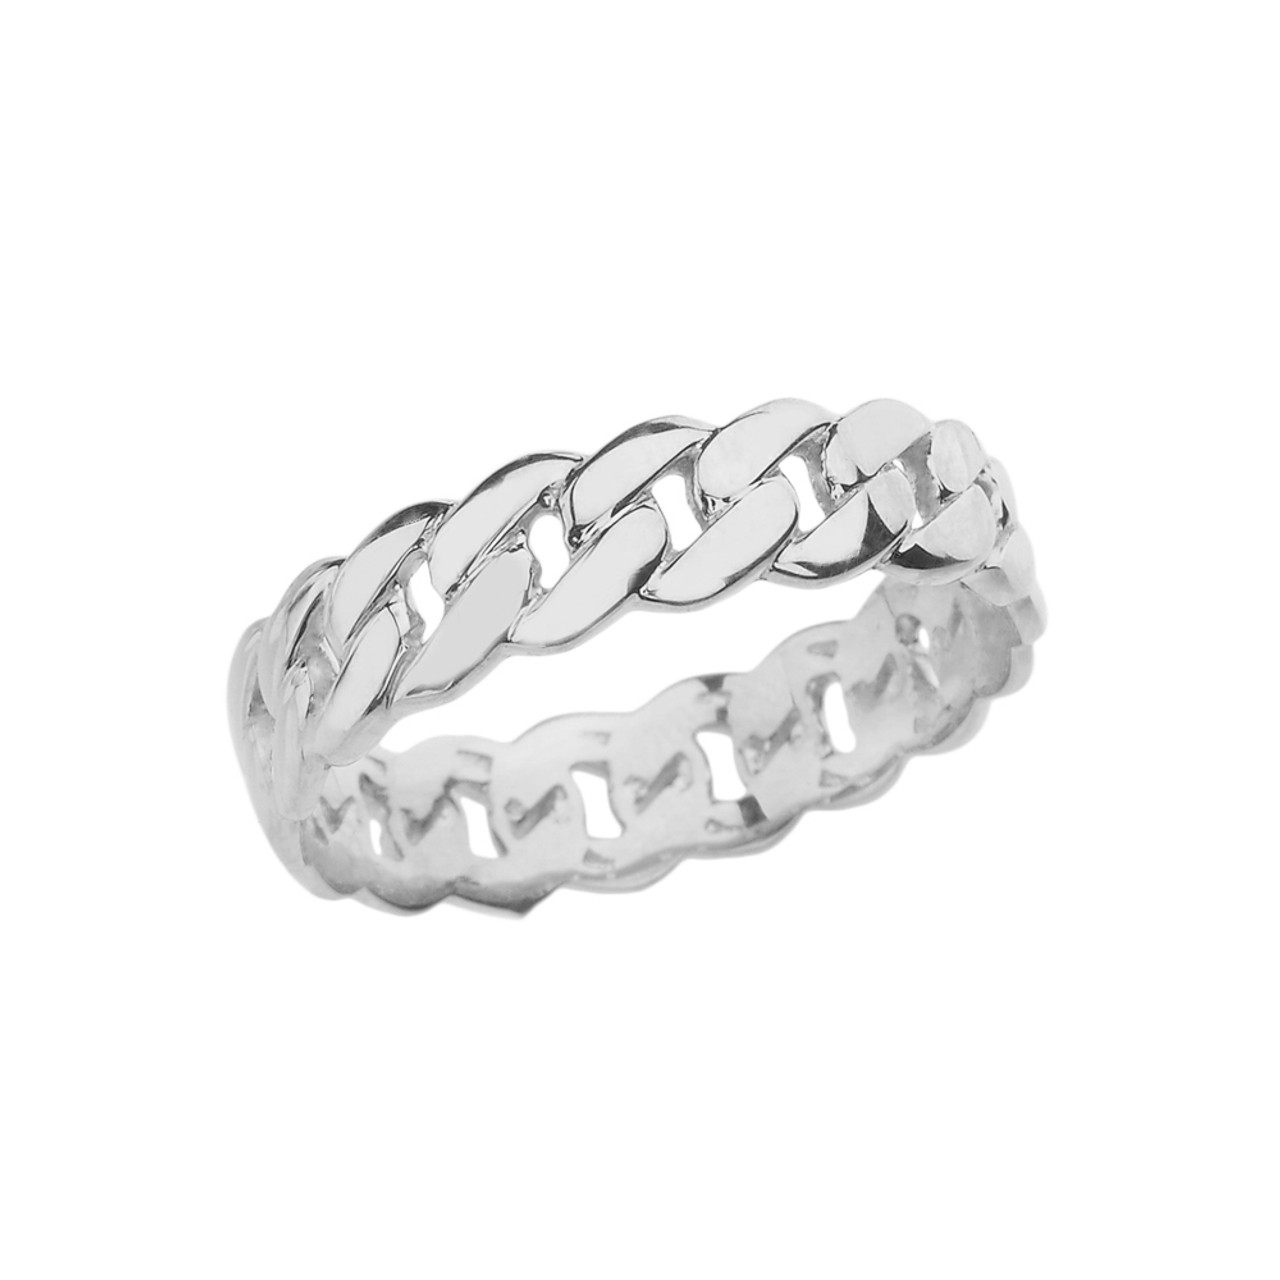 Celtic Rings 10k Gracious Rose Gold 5 mm Cuban Link Chain Eternity Band Ring